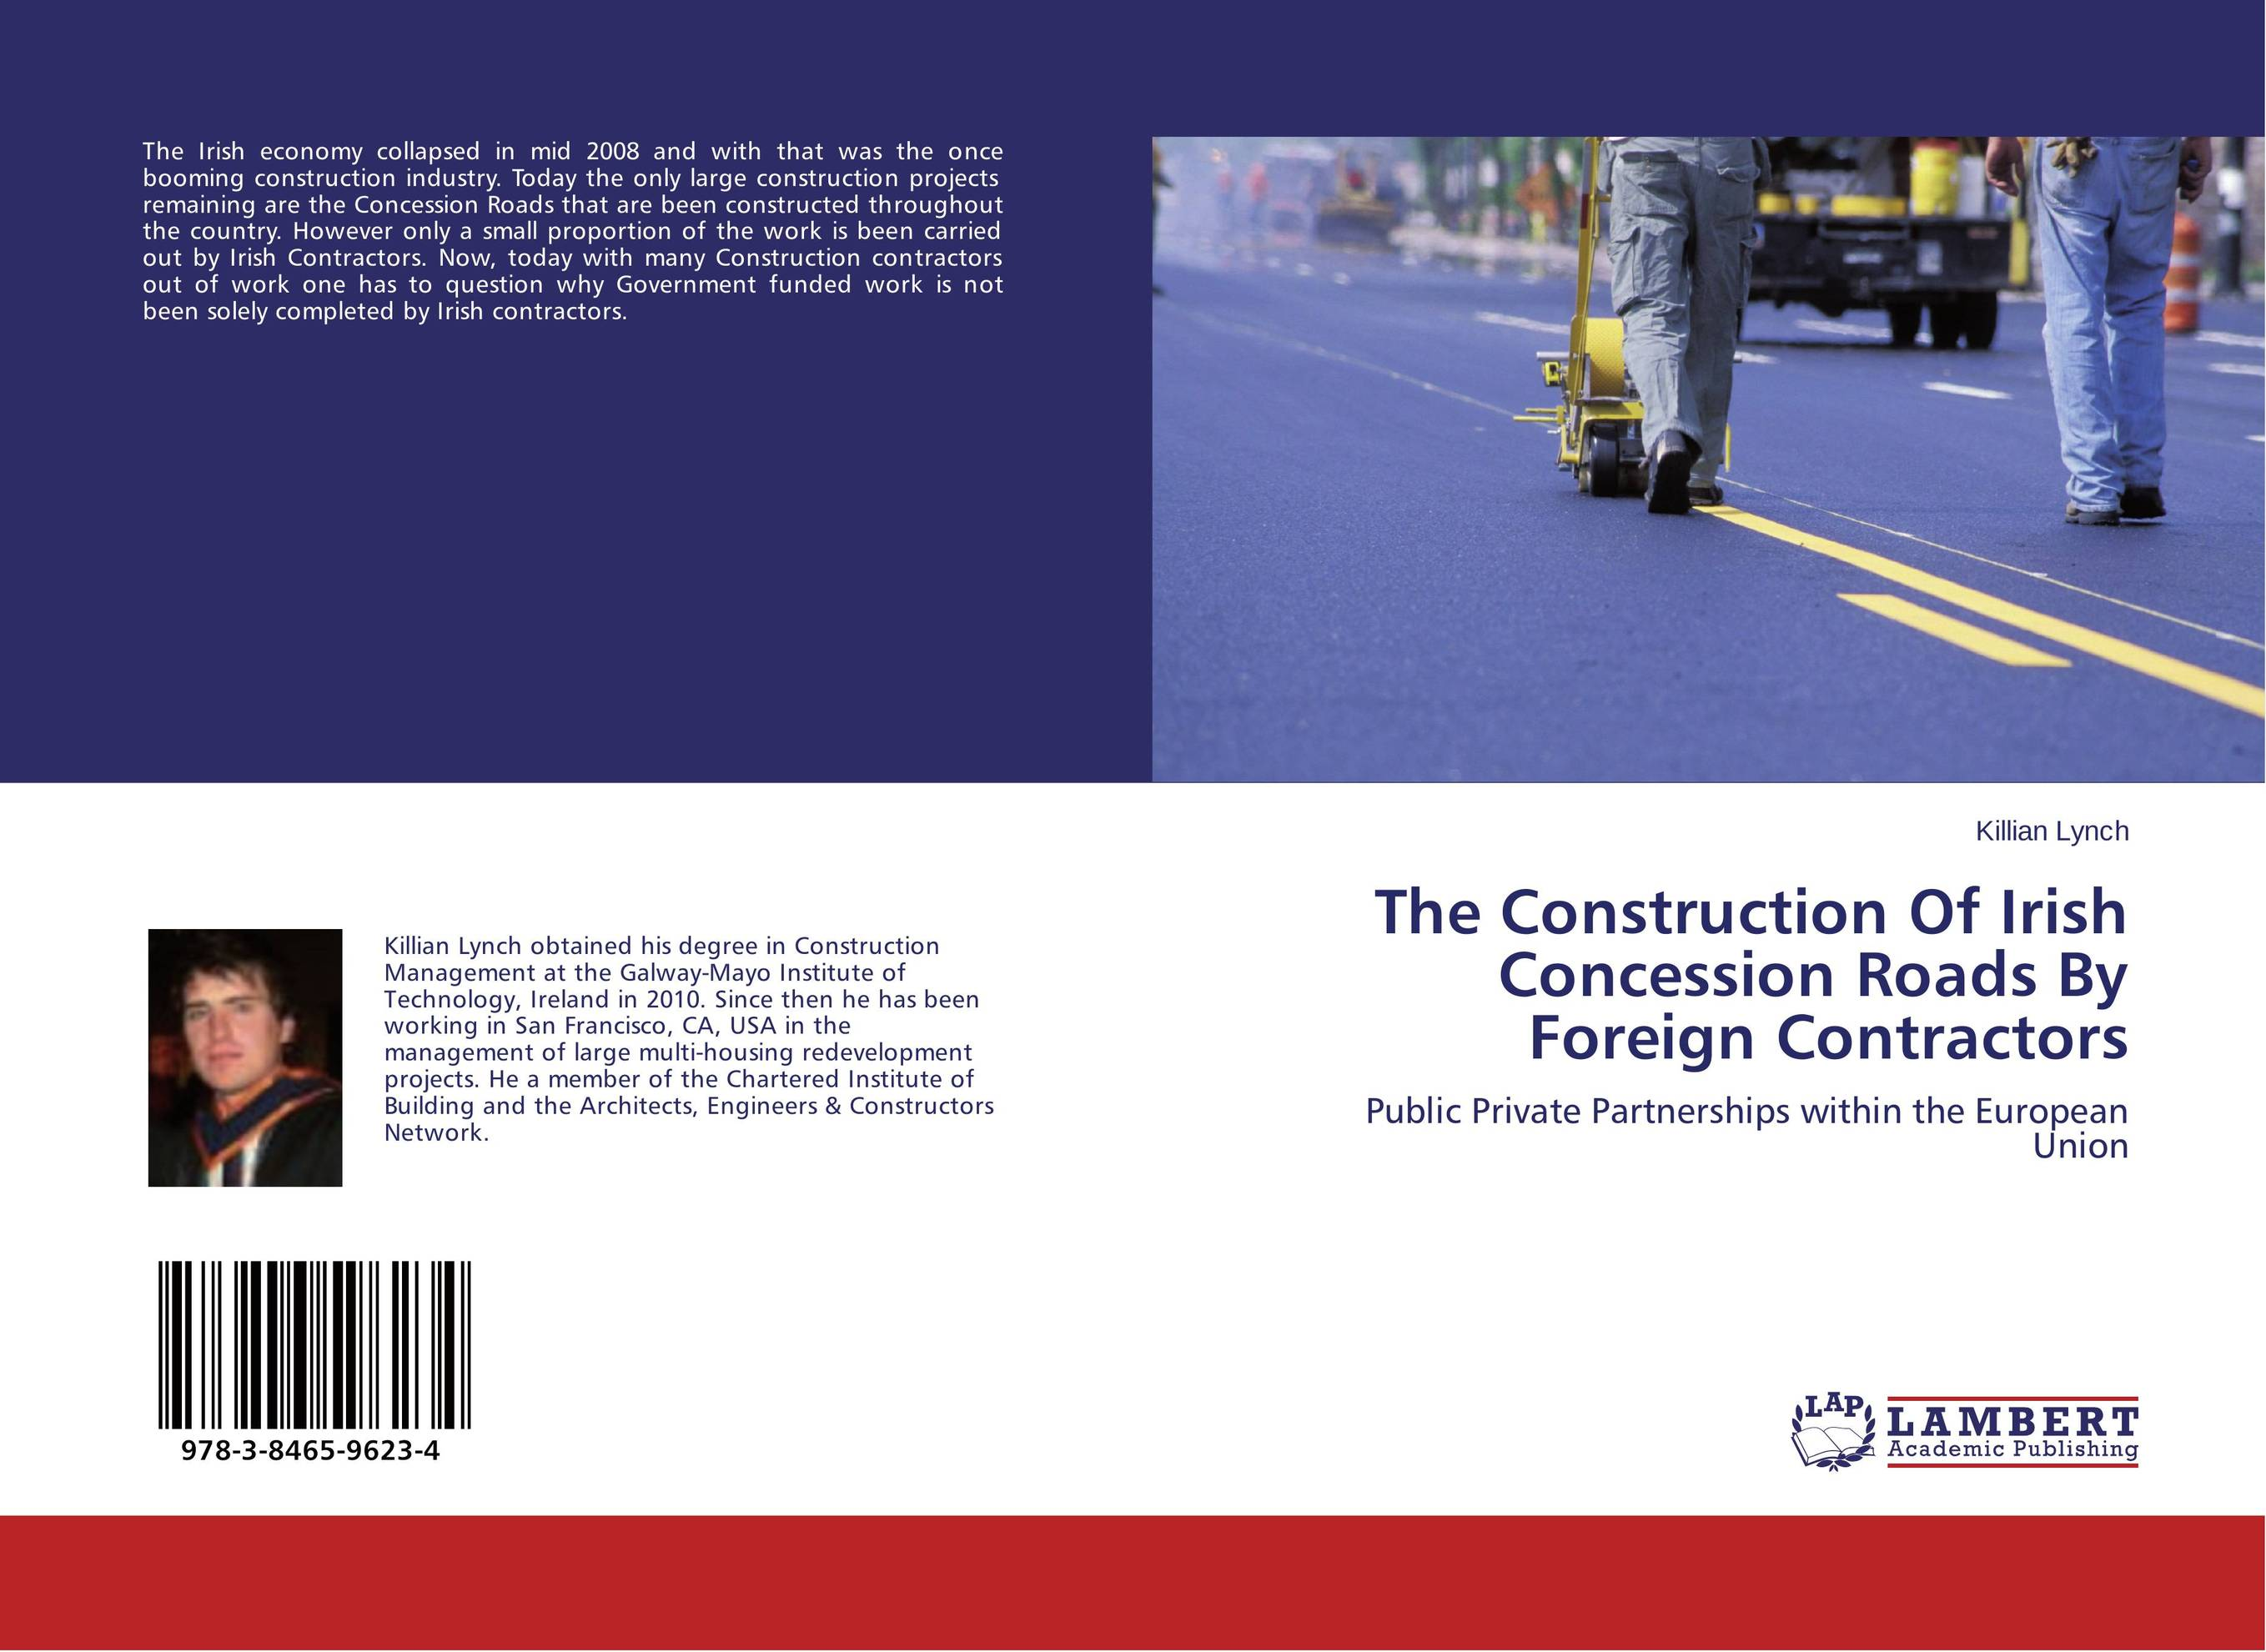 The Construction Of Irish Concession Roads By Foreign Contractors deutsch construction industry insurance handbook 1992 supplement pr only